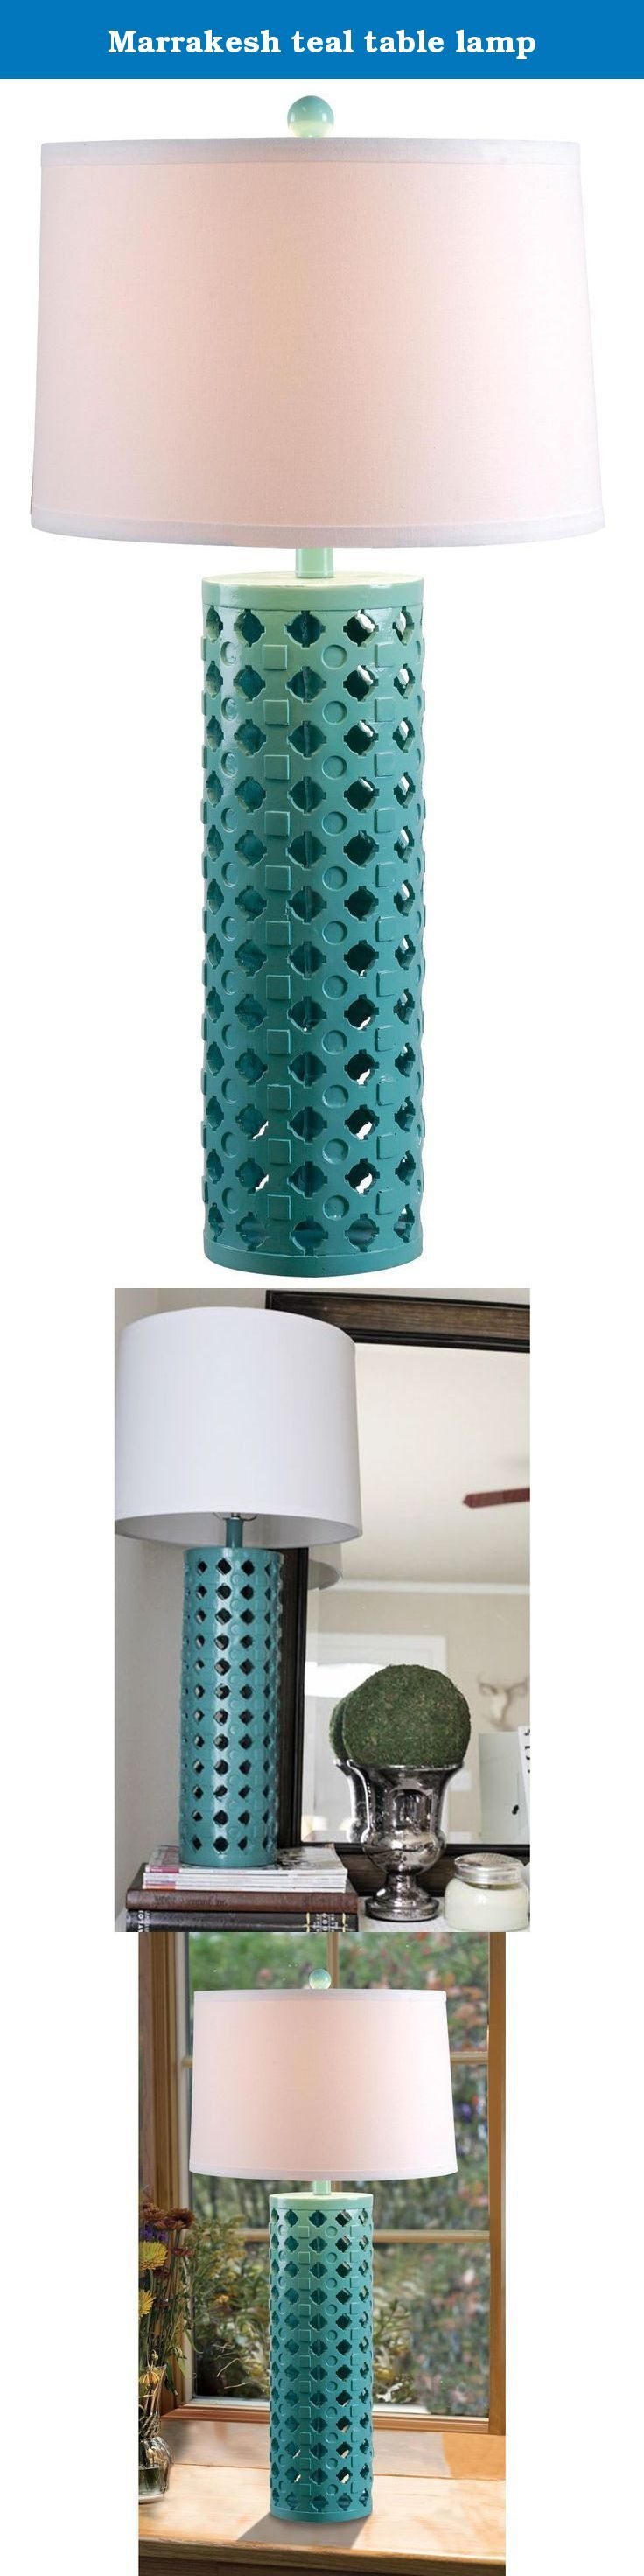 Marrakesh teal table lamp. Marrakesh showcases its Moroccan spirit in a pattern of indents and inlay adorning an openwork cylindrical base. Available in 2 contrasting finishes. 15-inch diameter white tapered drum shade tops this lamp. Uses one 150-watt three-way bulb with a three-way socket switch.